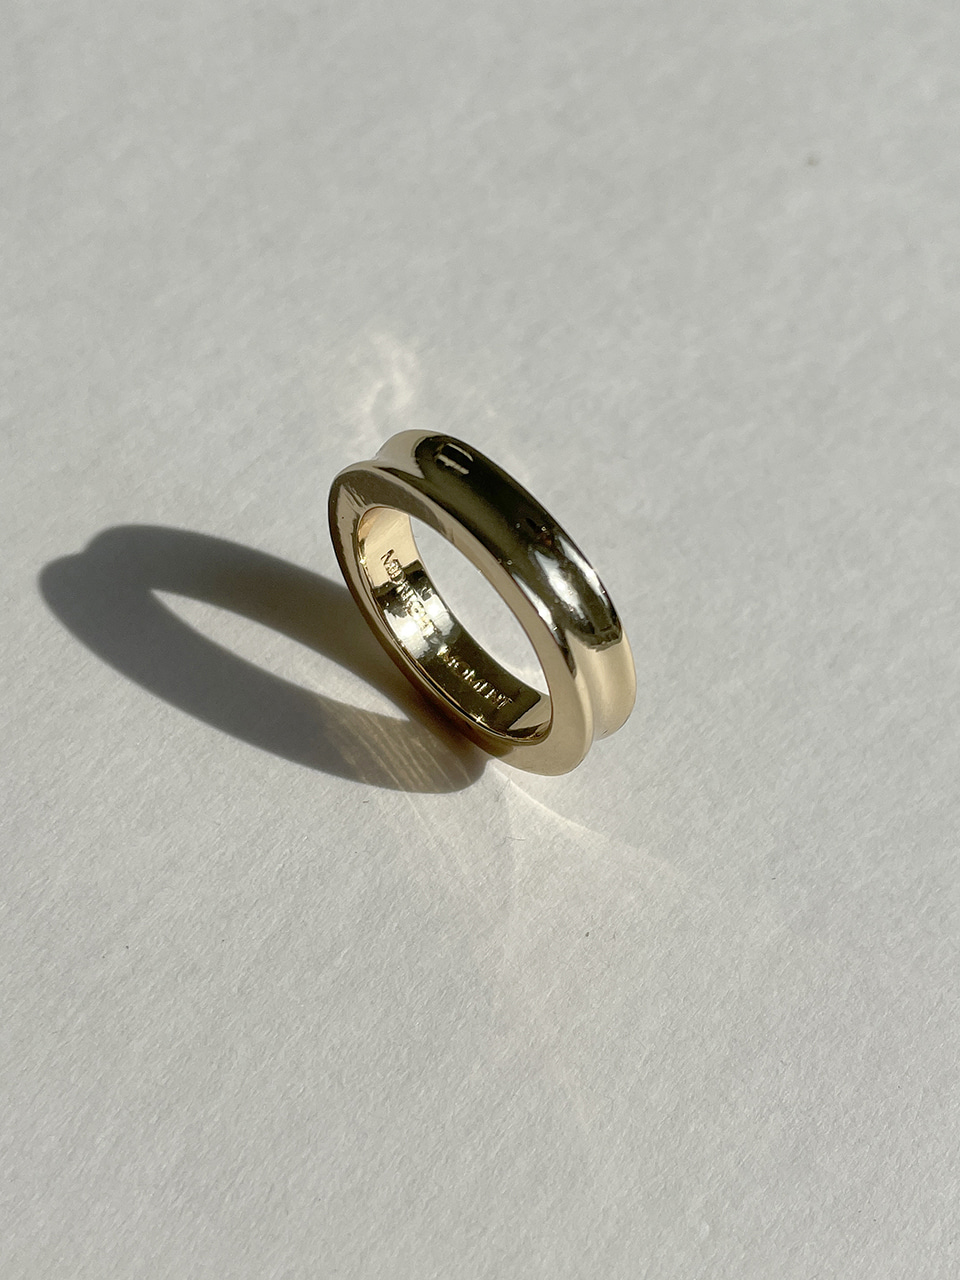 pass ring - gold